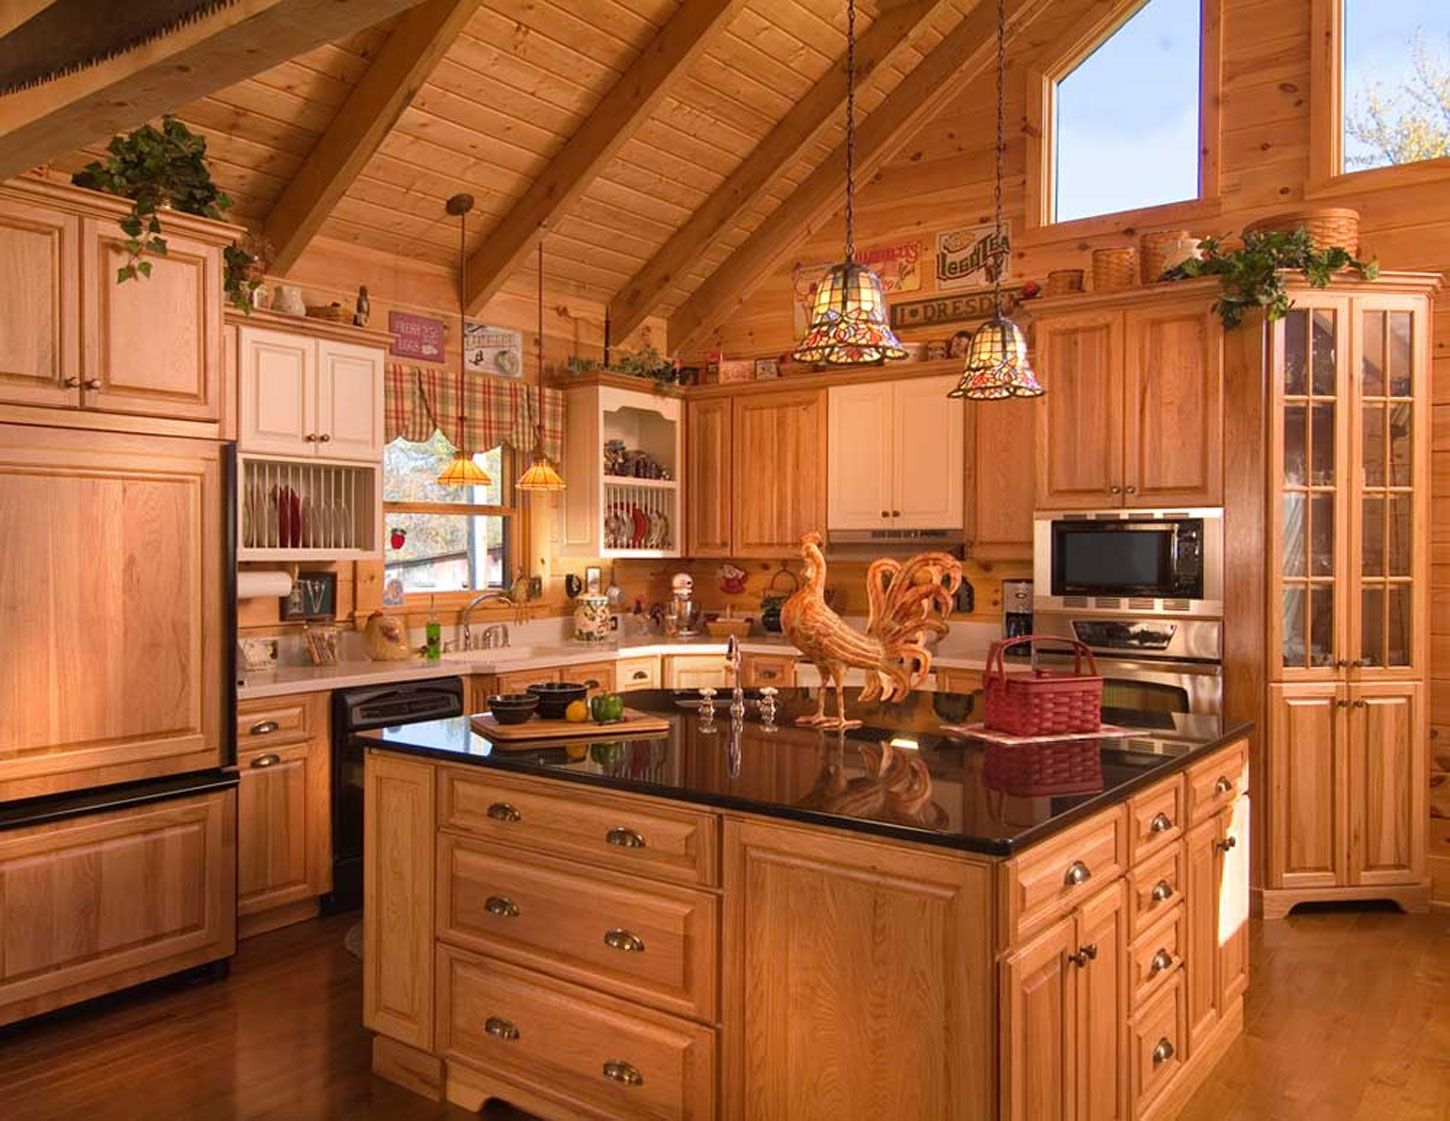 Kitchen cabinet ideas for log homes - Kitchen Best Photos Of Kitchen Log Cabin Style Homes Log Cabin Homes Kitchen Cabinets For Log Cabin Home Glamorous Kitchen Cabinets For Log Cabin Home